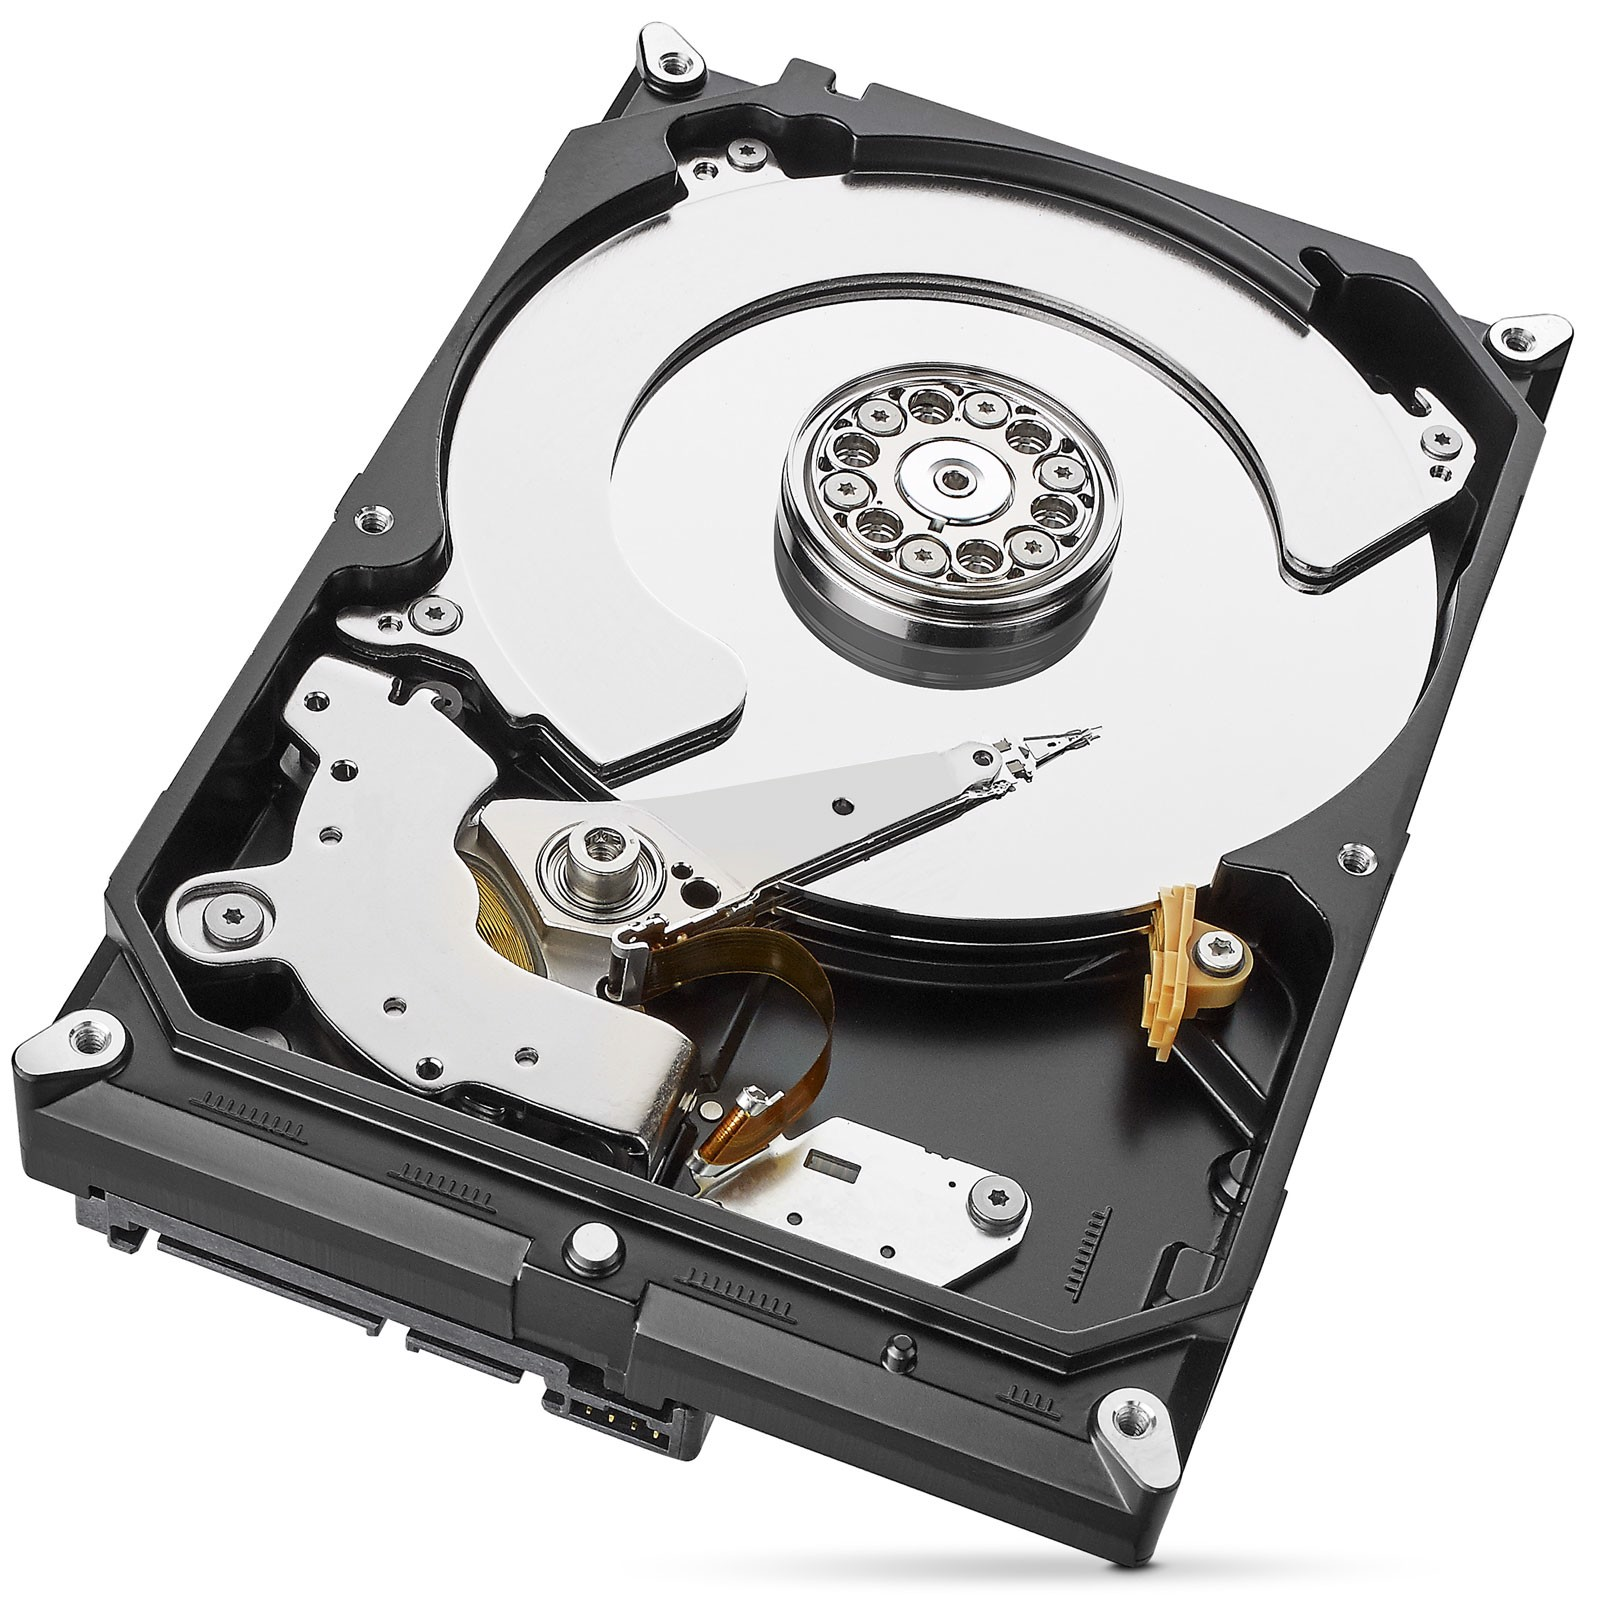 Ổ cứng HDD Seagate 10Tb 7200rpm